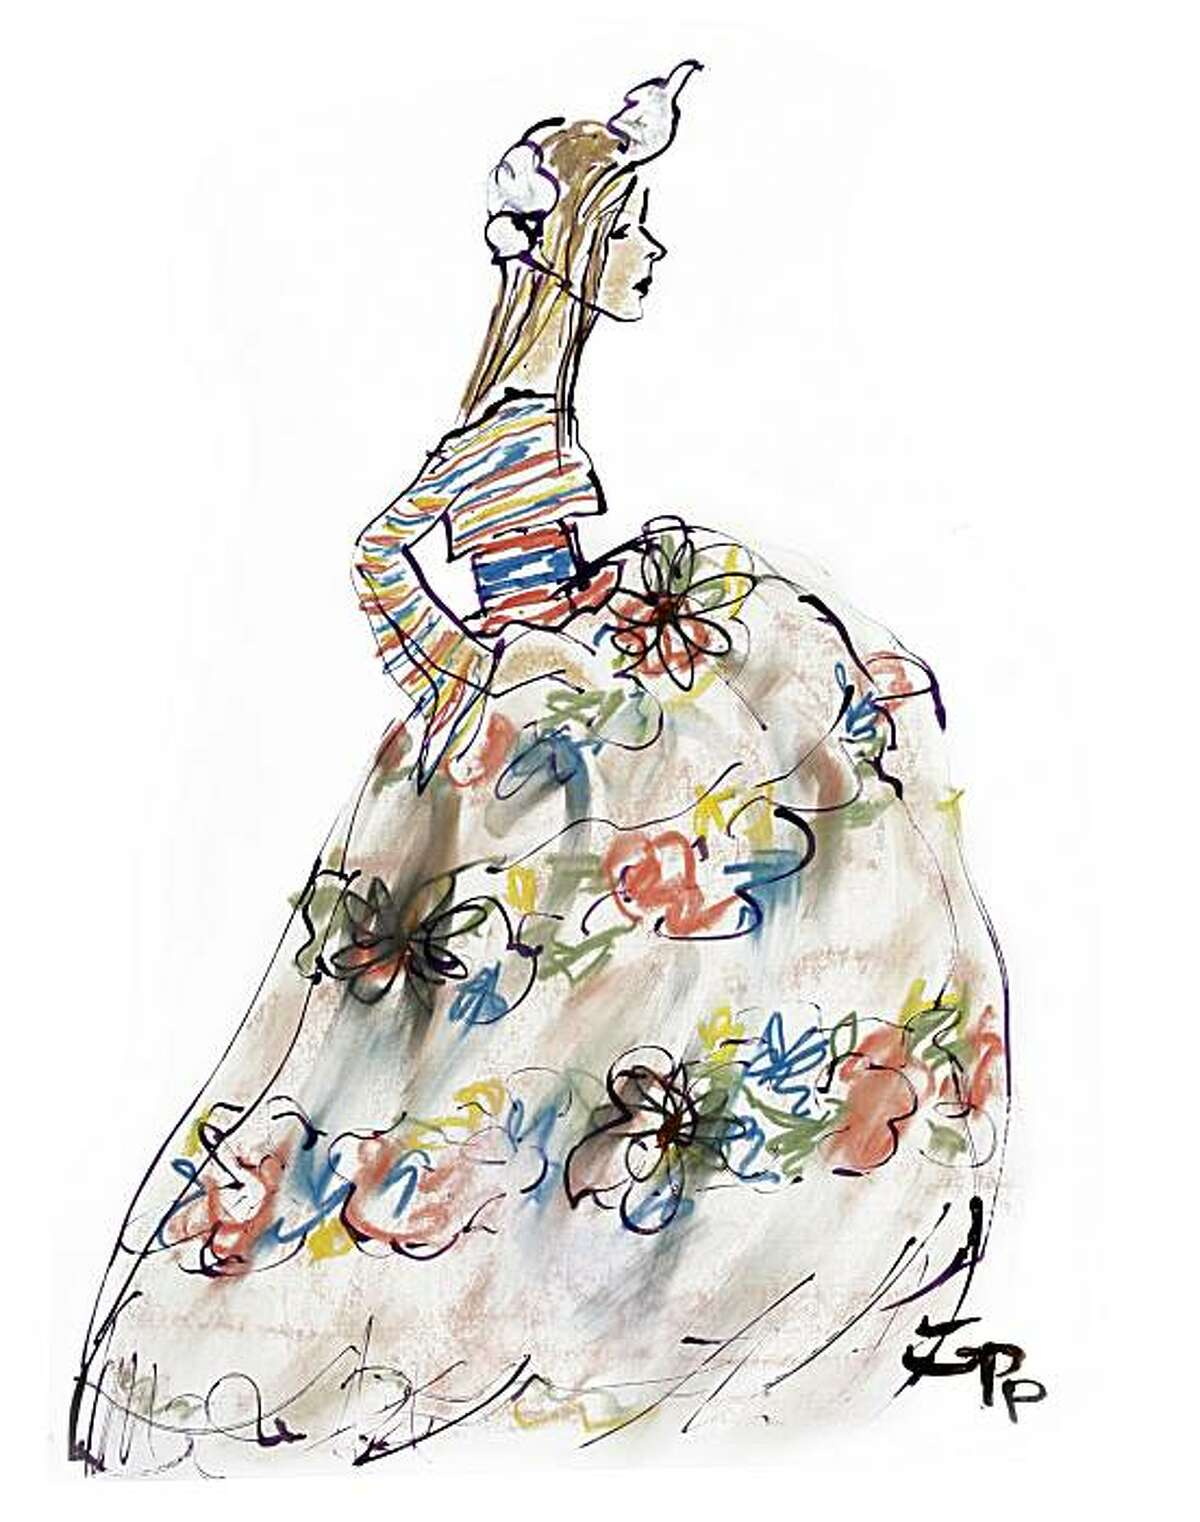 Actress Rita Wilson in a Jean Paul Gaultier gown, an illustration dreamed up by fashion illustrator Gladys Perint Palmer after spotting Wilson chatting with Gaultier at a Paris fashion event. Palmer, who is the executive director of the Academy of Art University's school of fashion, was selected to createpromotional images for Mercedes-Benz Fashion Week in February 2011.